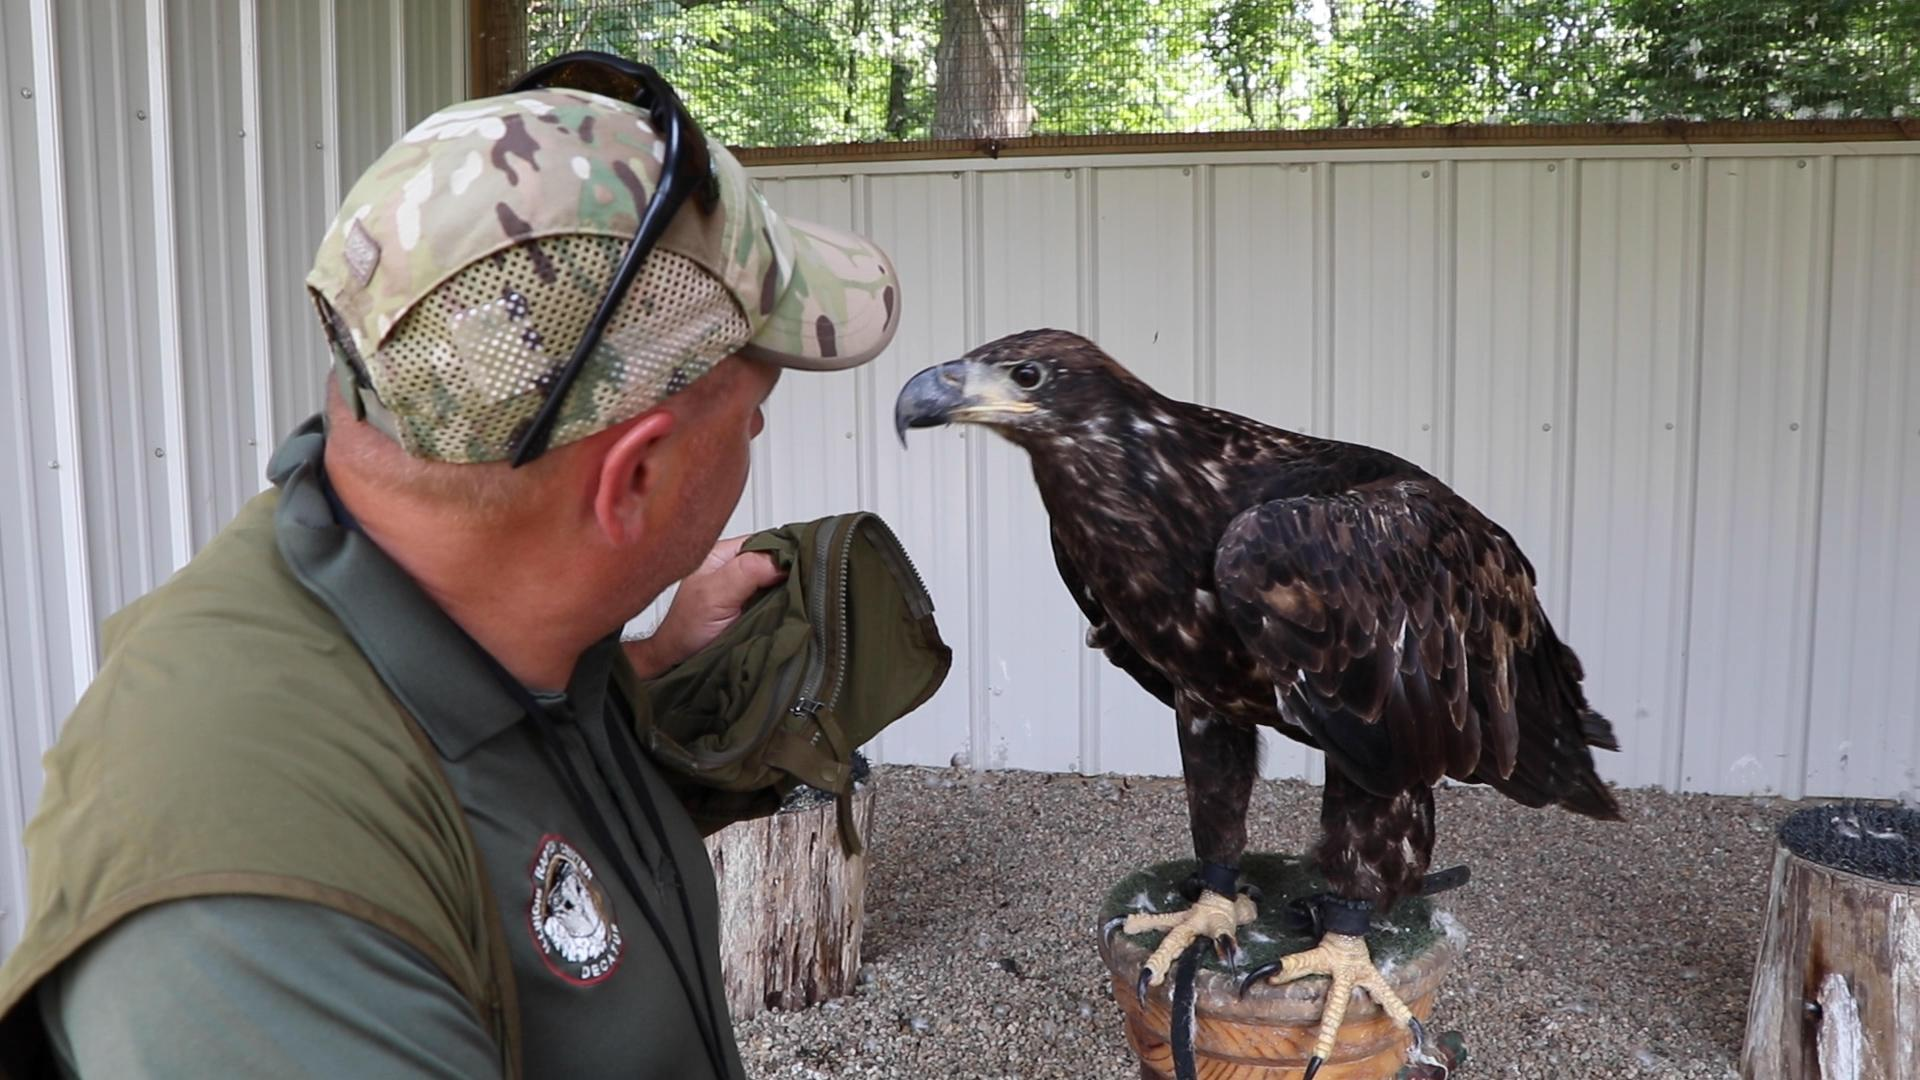 Illinois Raptor Center Program Director Jacques Nuzzo visits Laura, a two-year-old bald eagle that tested positive for West Nile Disease. Bald eagles don't get their white-feathered heads until they're about 5 years old. (Evan Garcia / WTTW News)